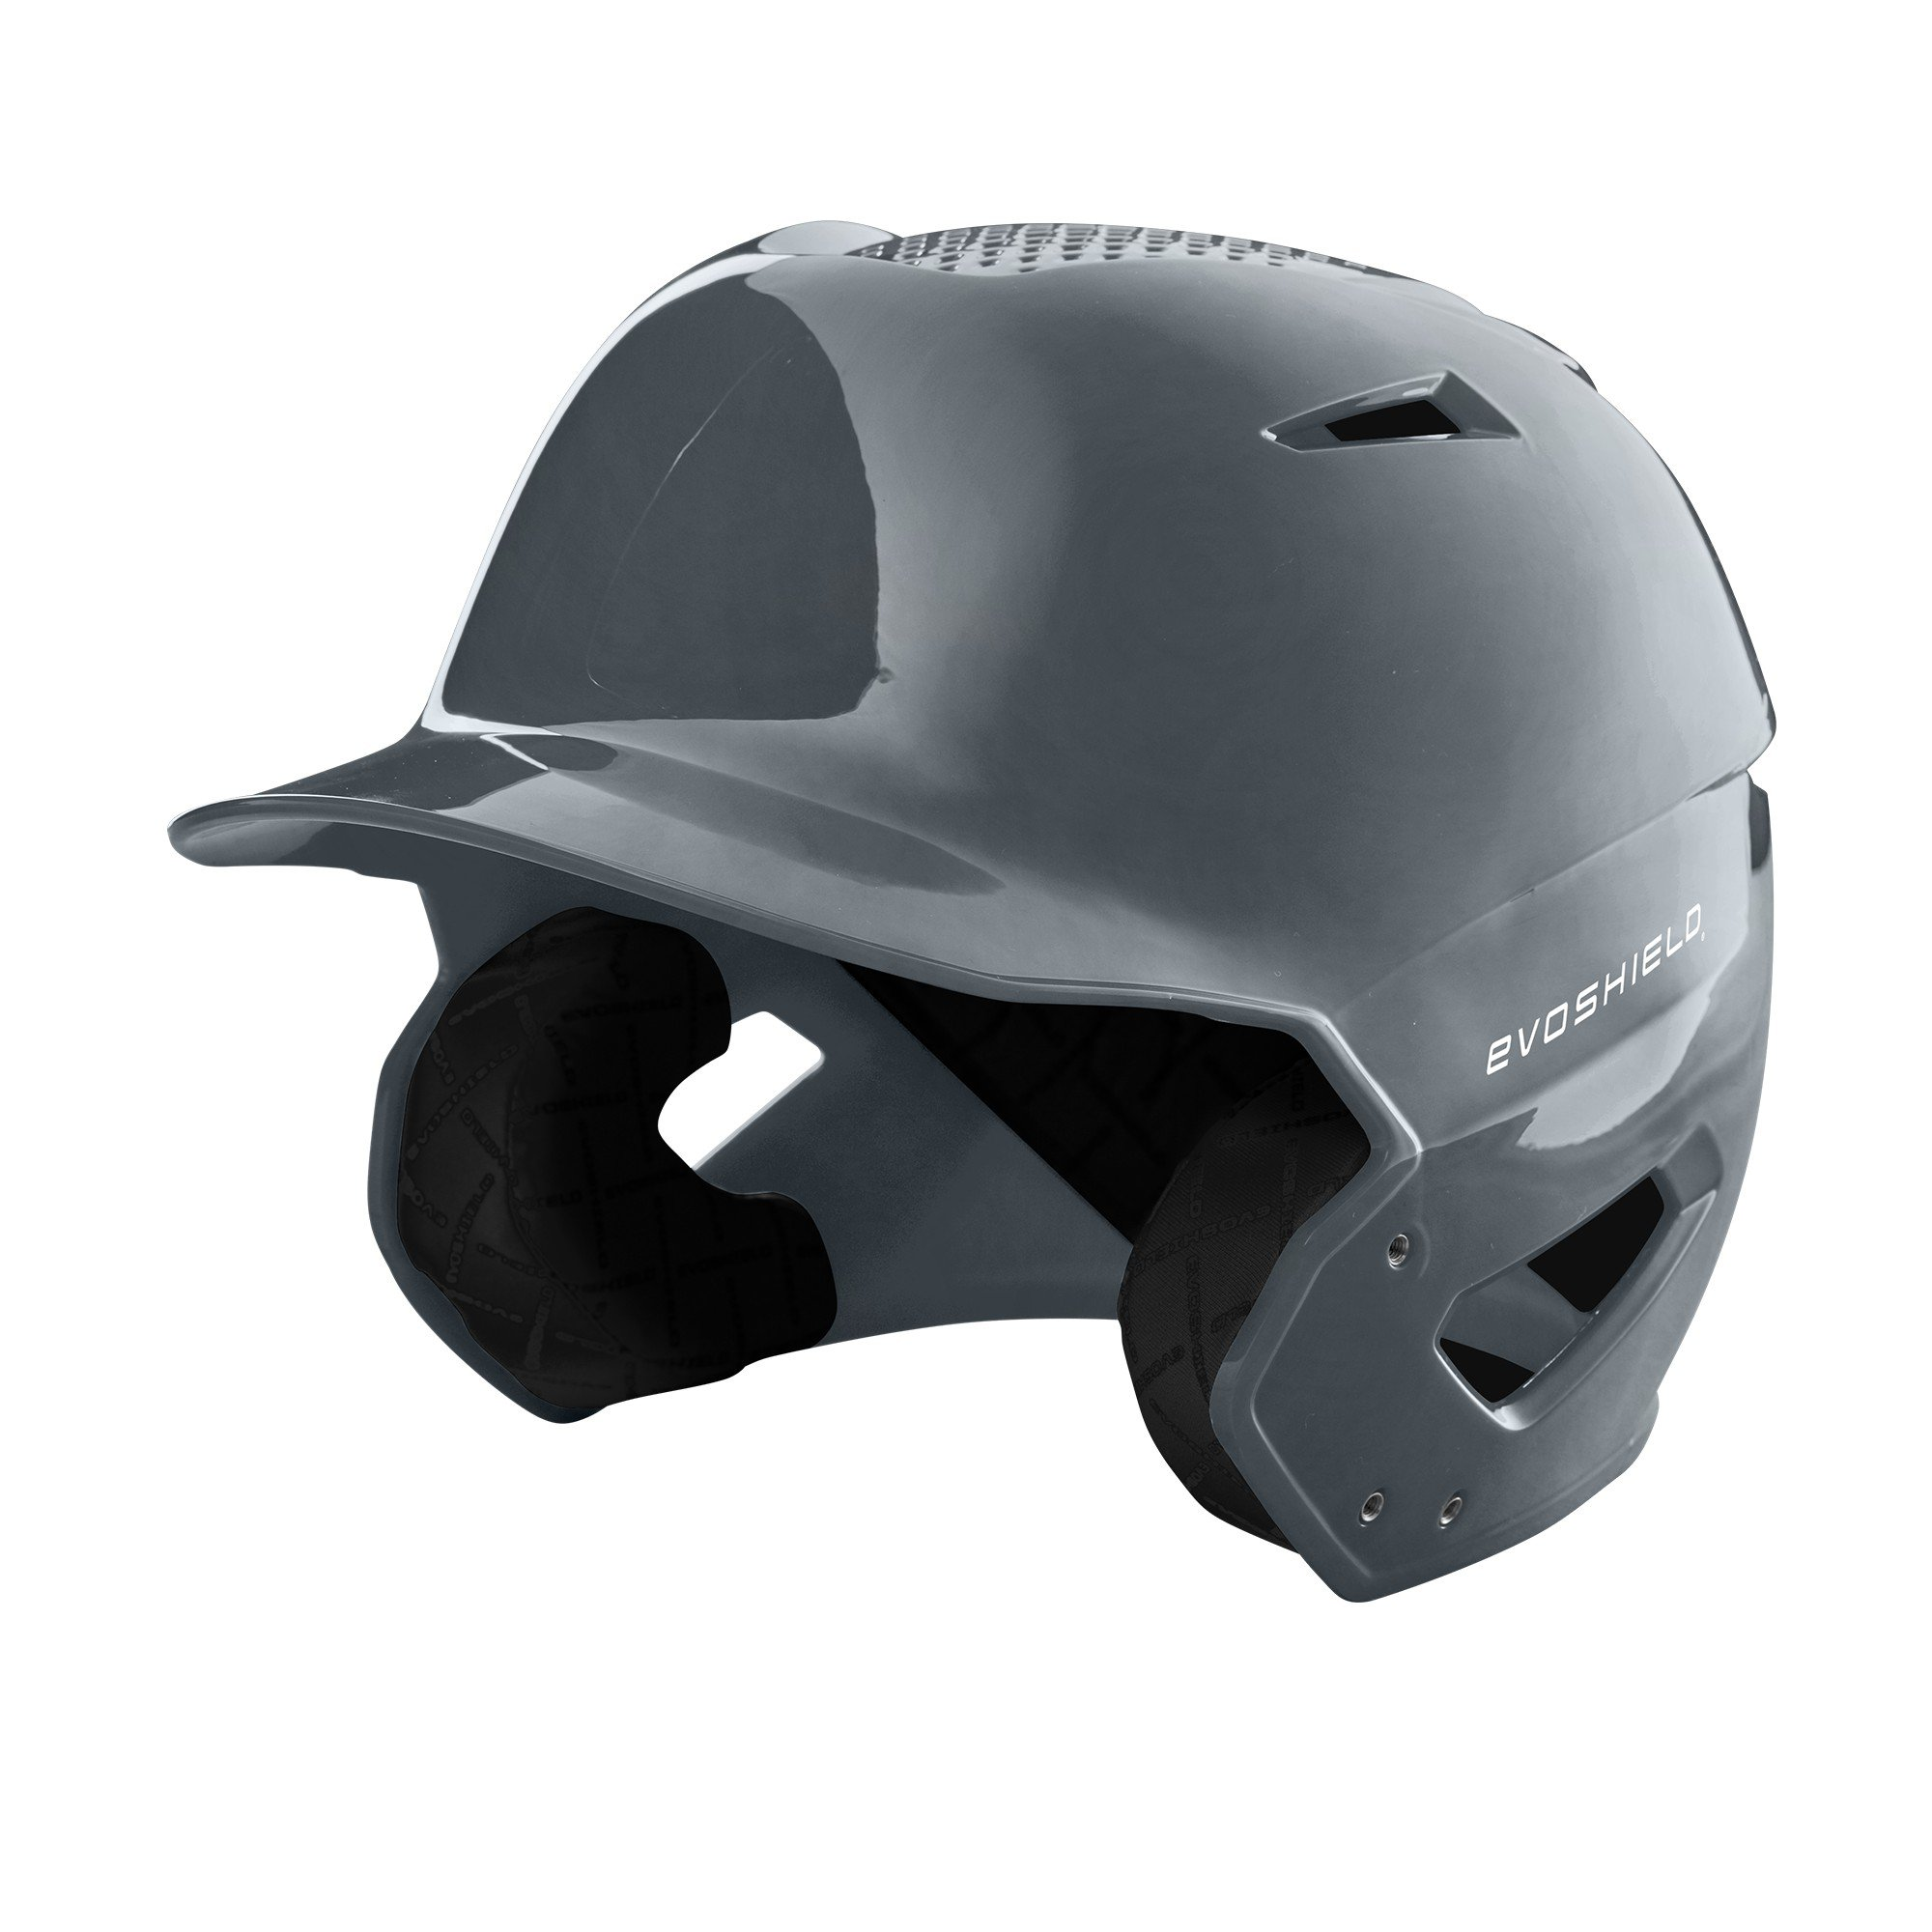 EvoShield XVT Batting Helmet, Charcoal - S-M by EvoShield